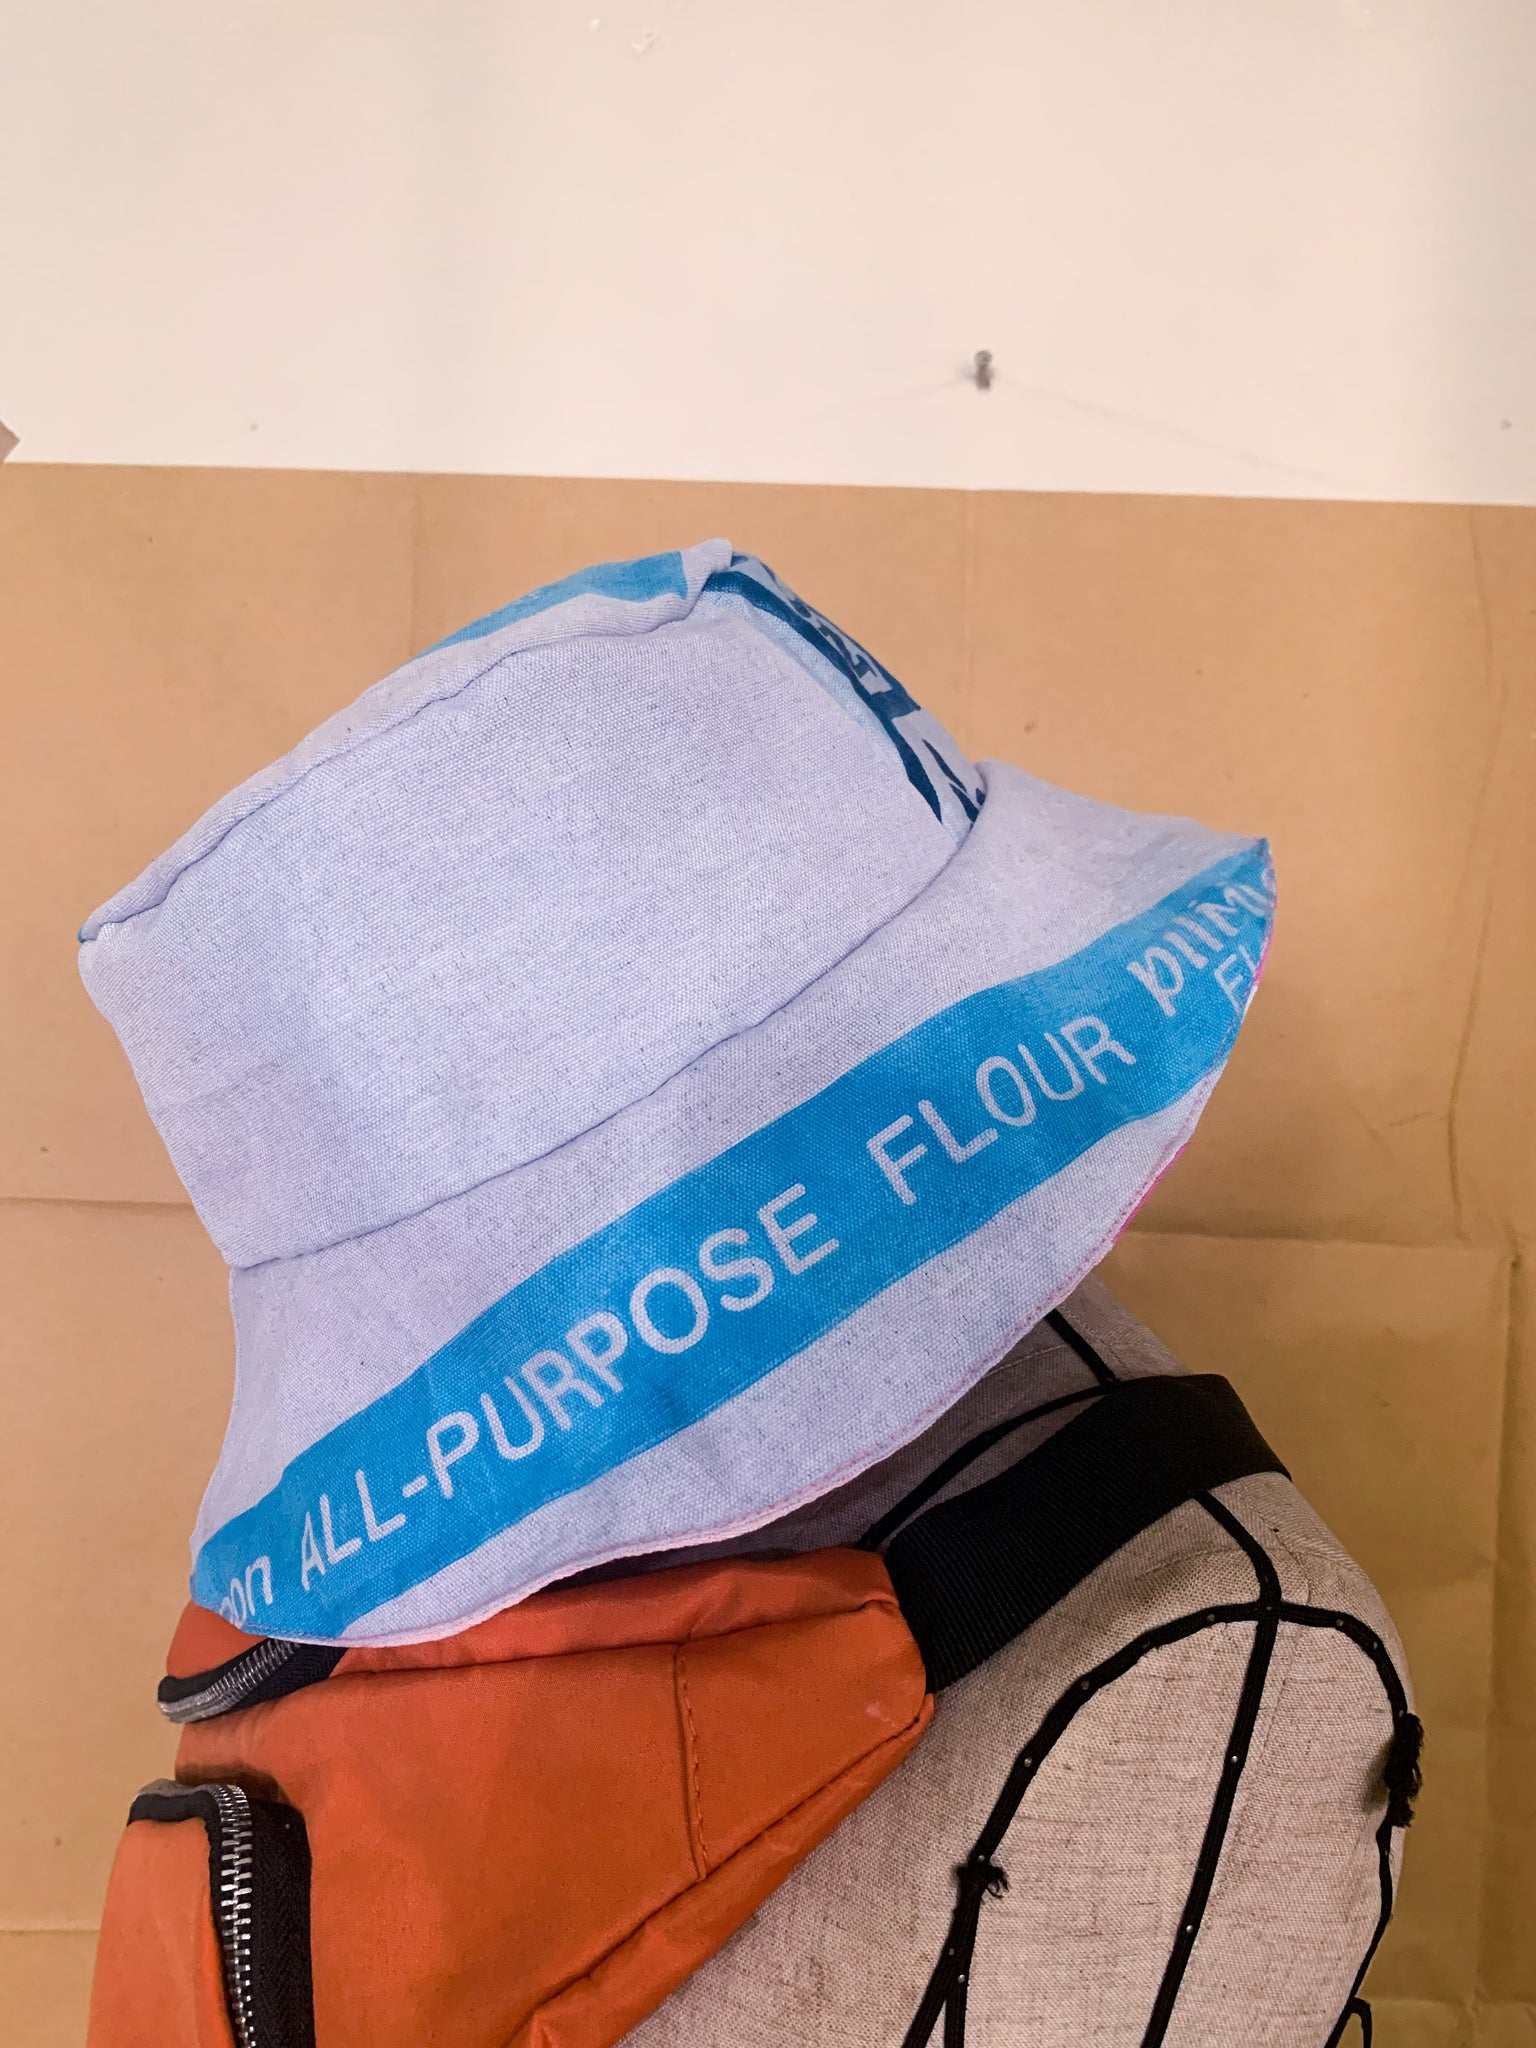 REVERSIBLE BUCKET HAT - Kurtina x Flour Power Retaso Combo (Blues + Browns)